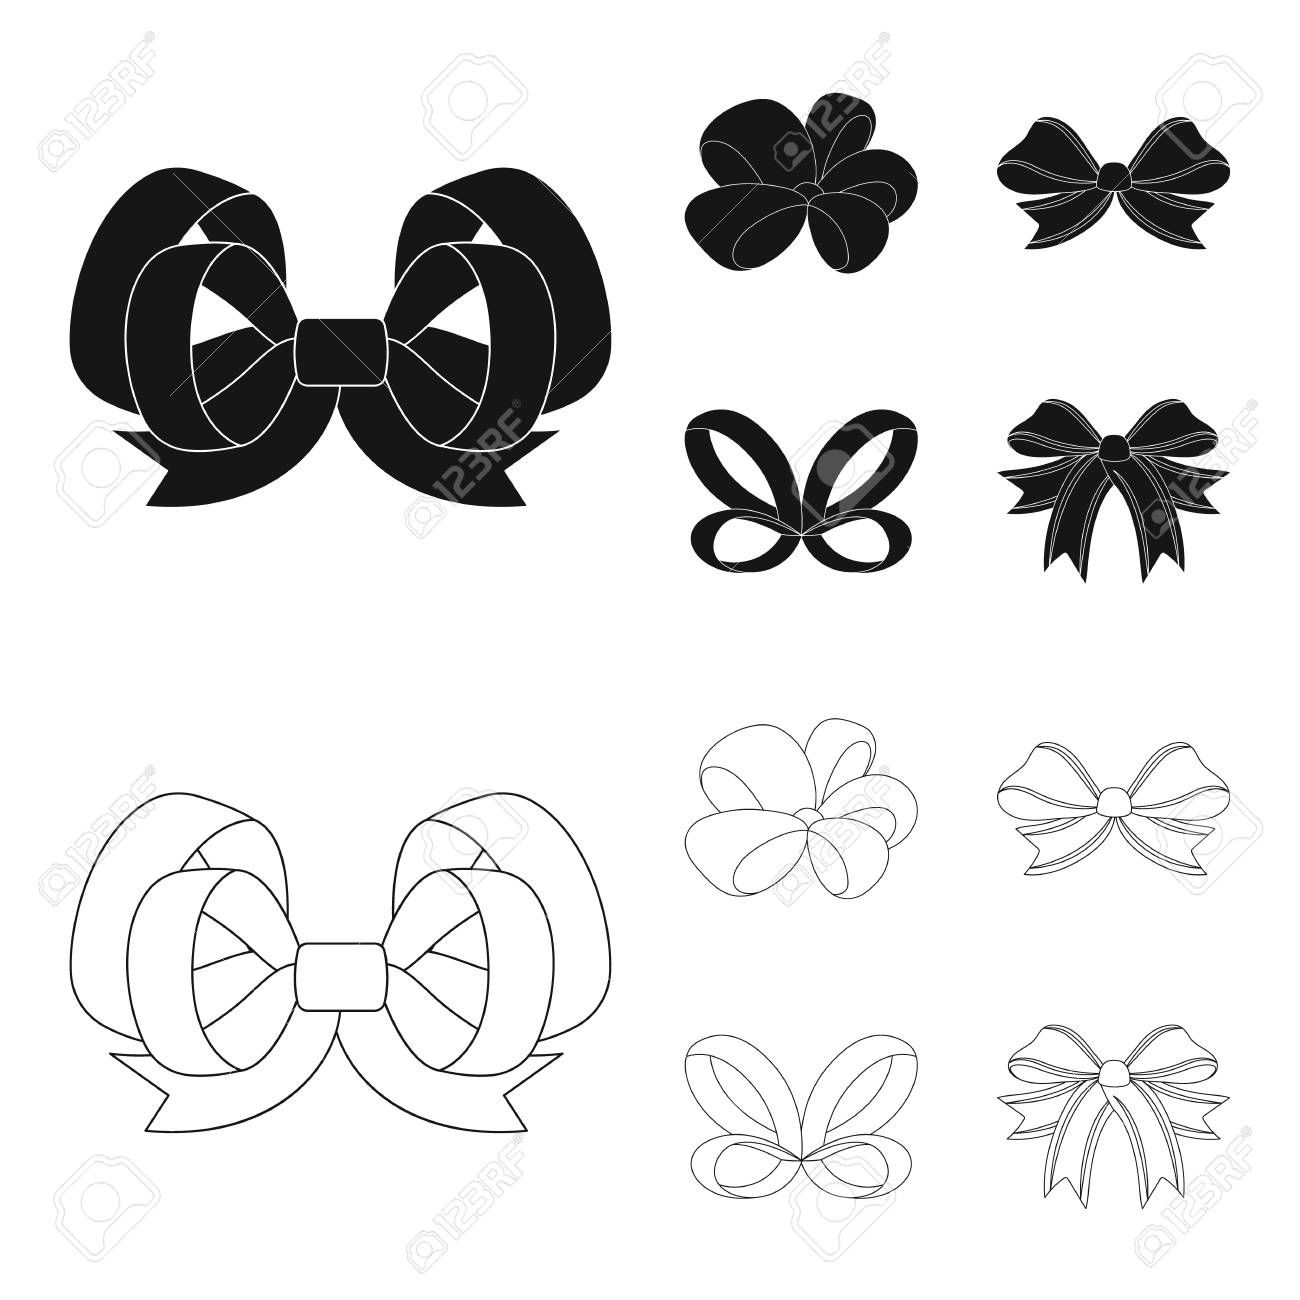 Ornamentals, frippery, finery and other web icon in black